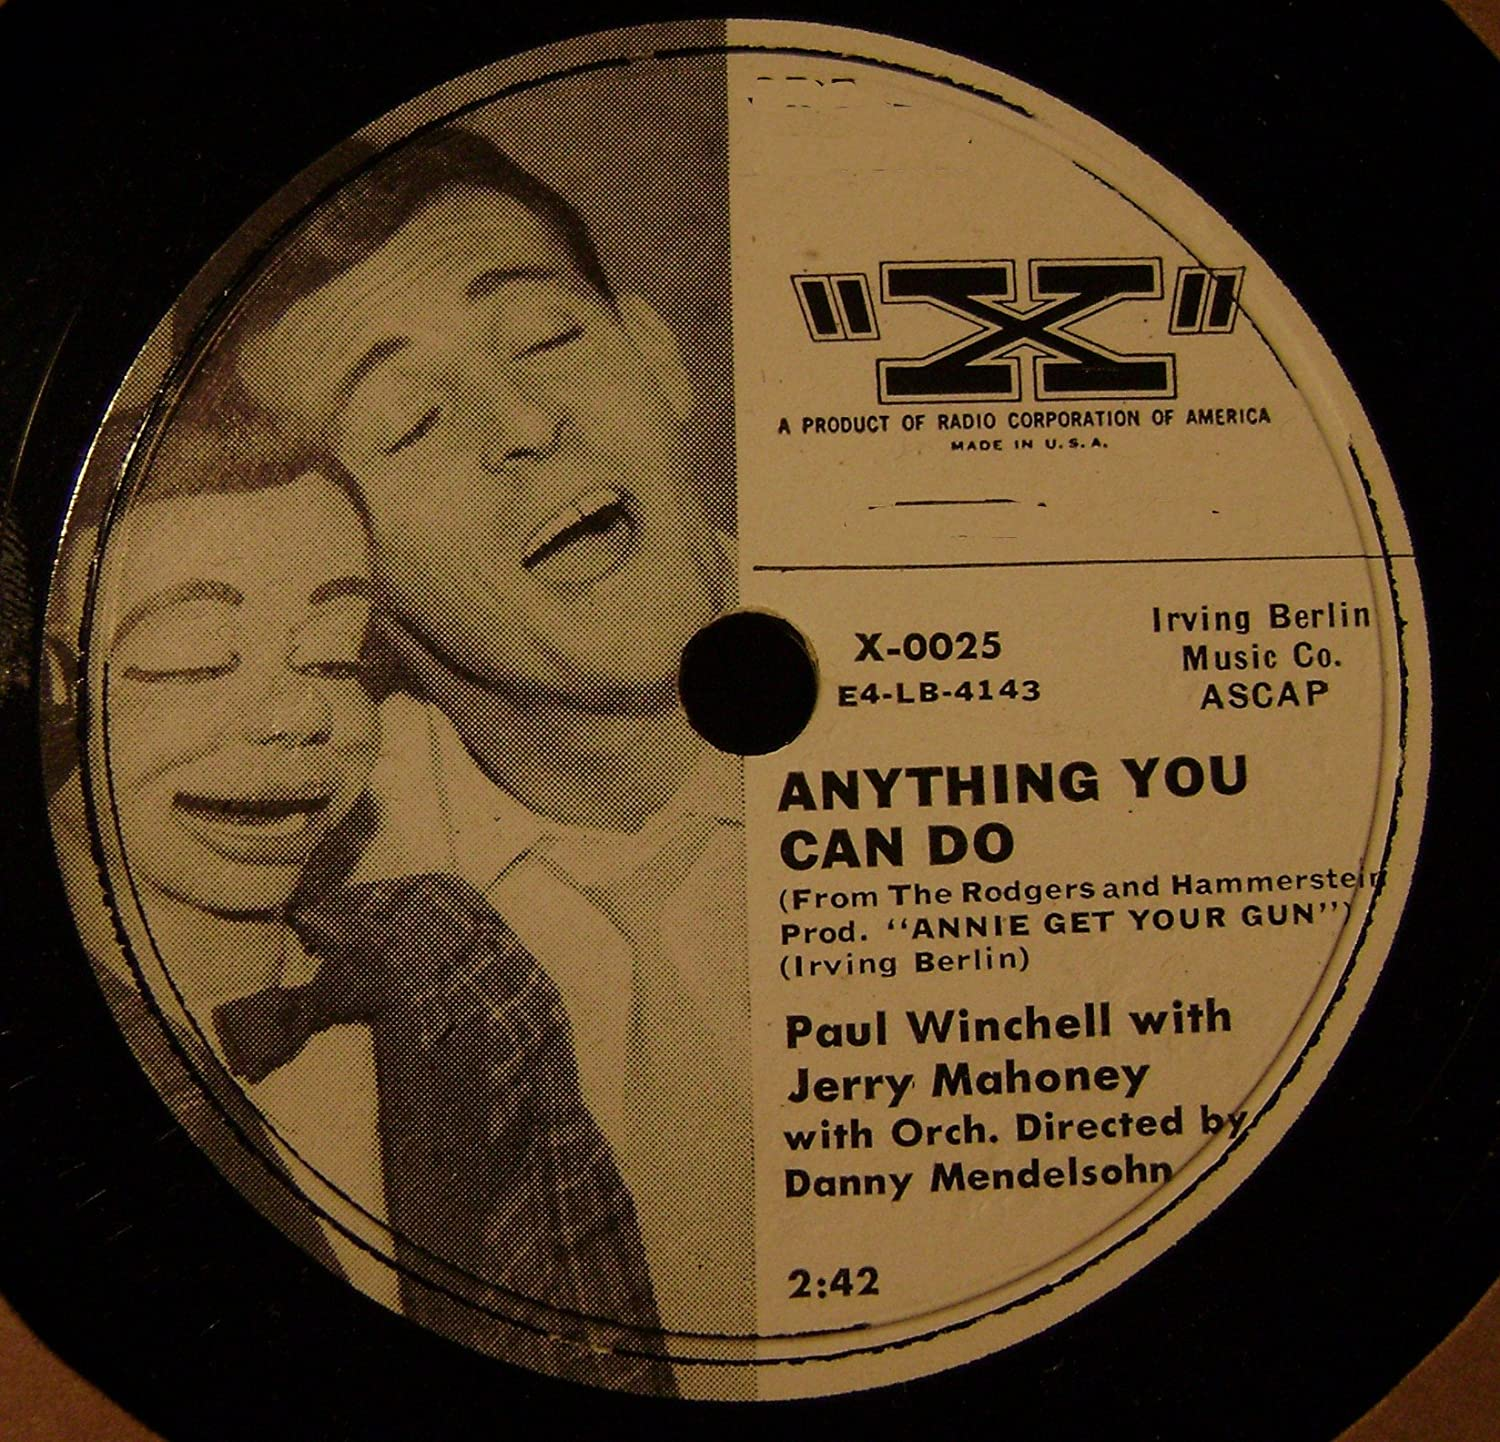 Paul Winchell With Jerry Mahoney - Anything You Can Do/ Your